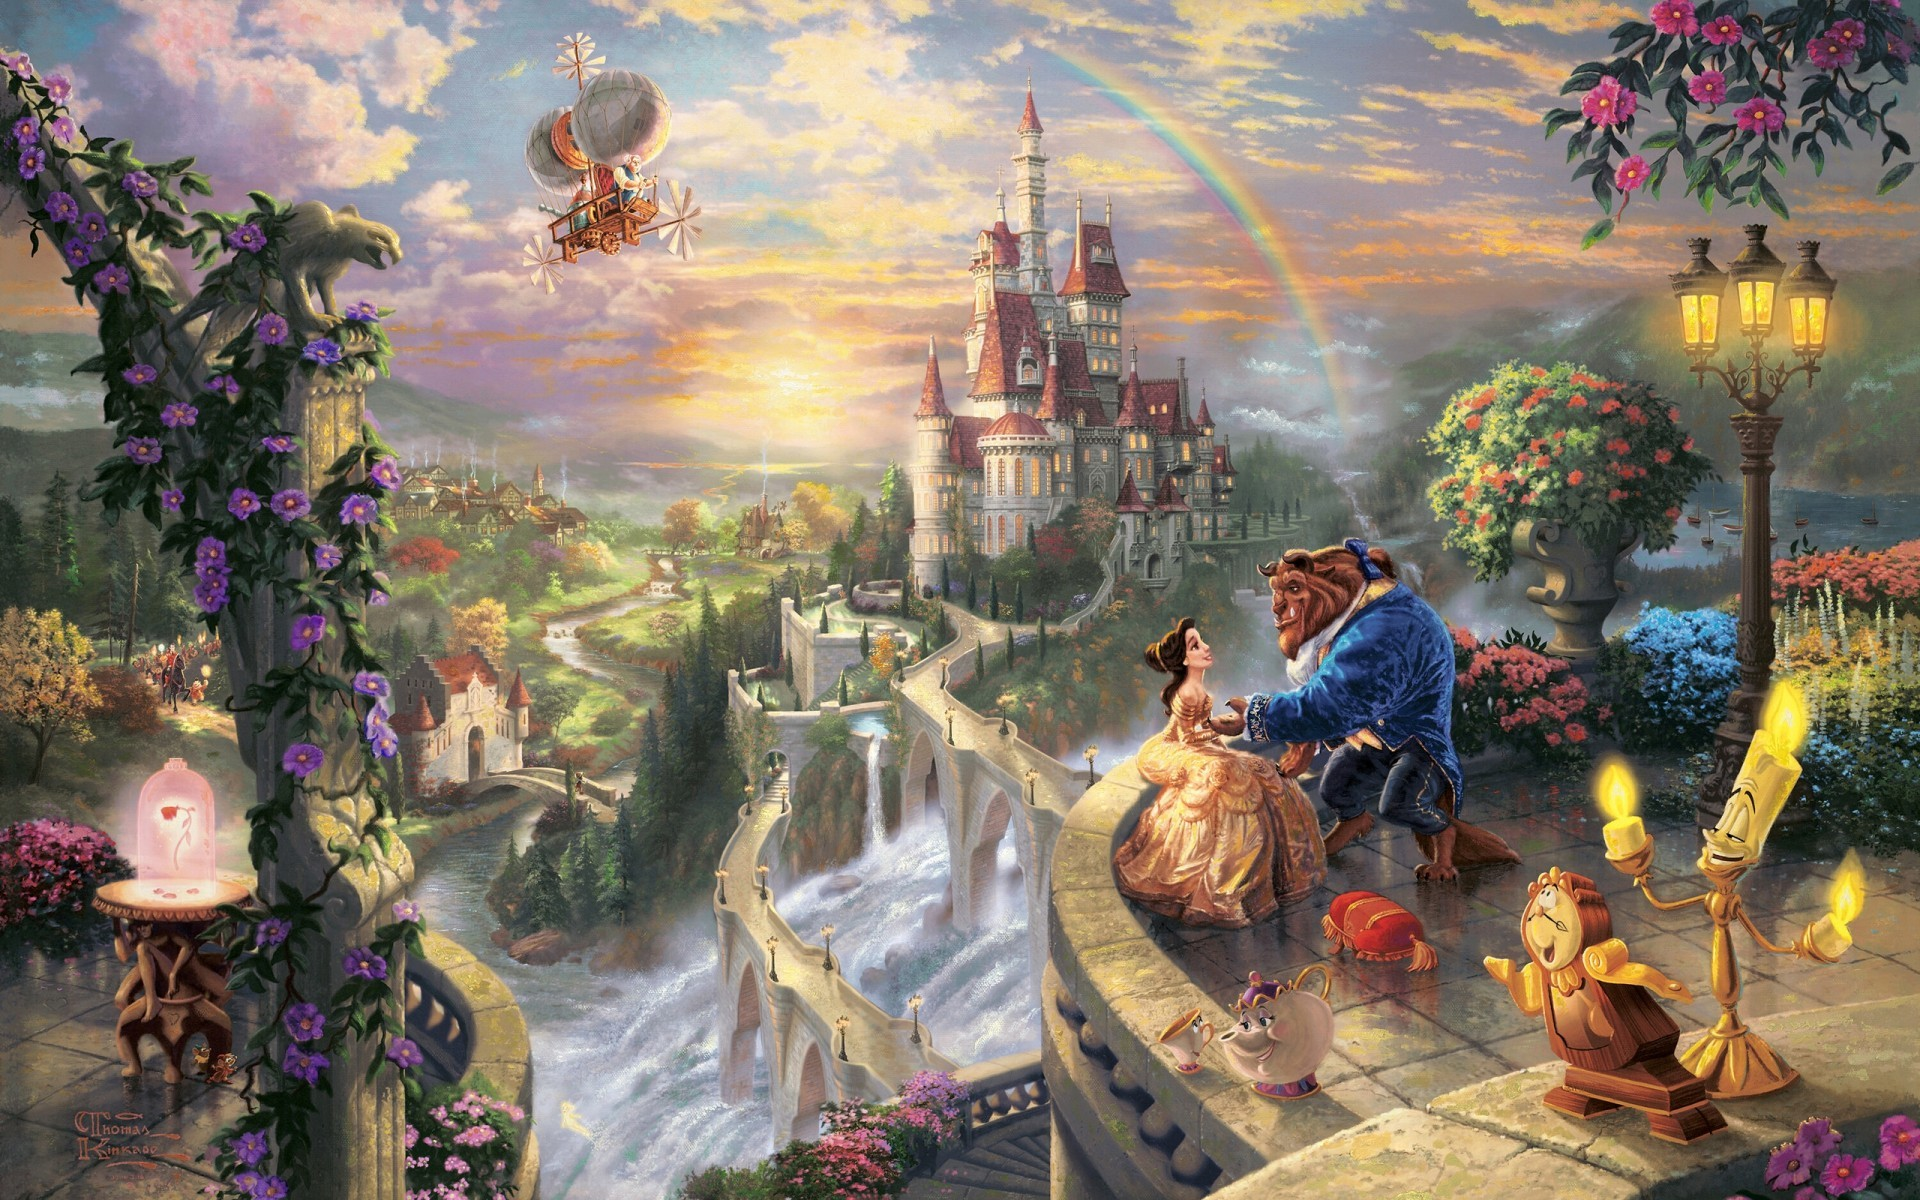 Res: 1920x1200, Previous: Beauty & The Beast ...